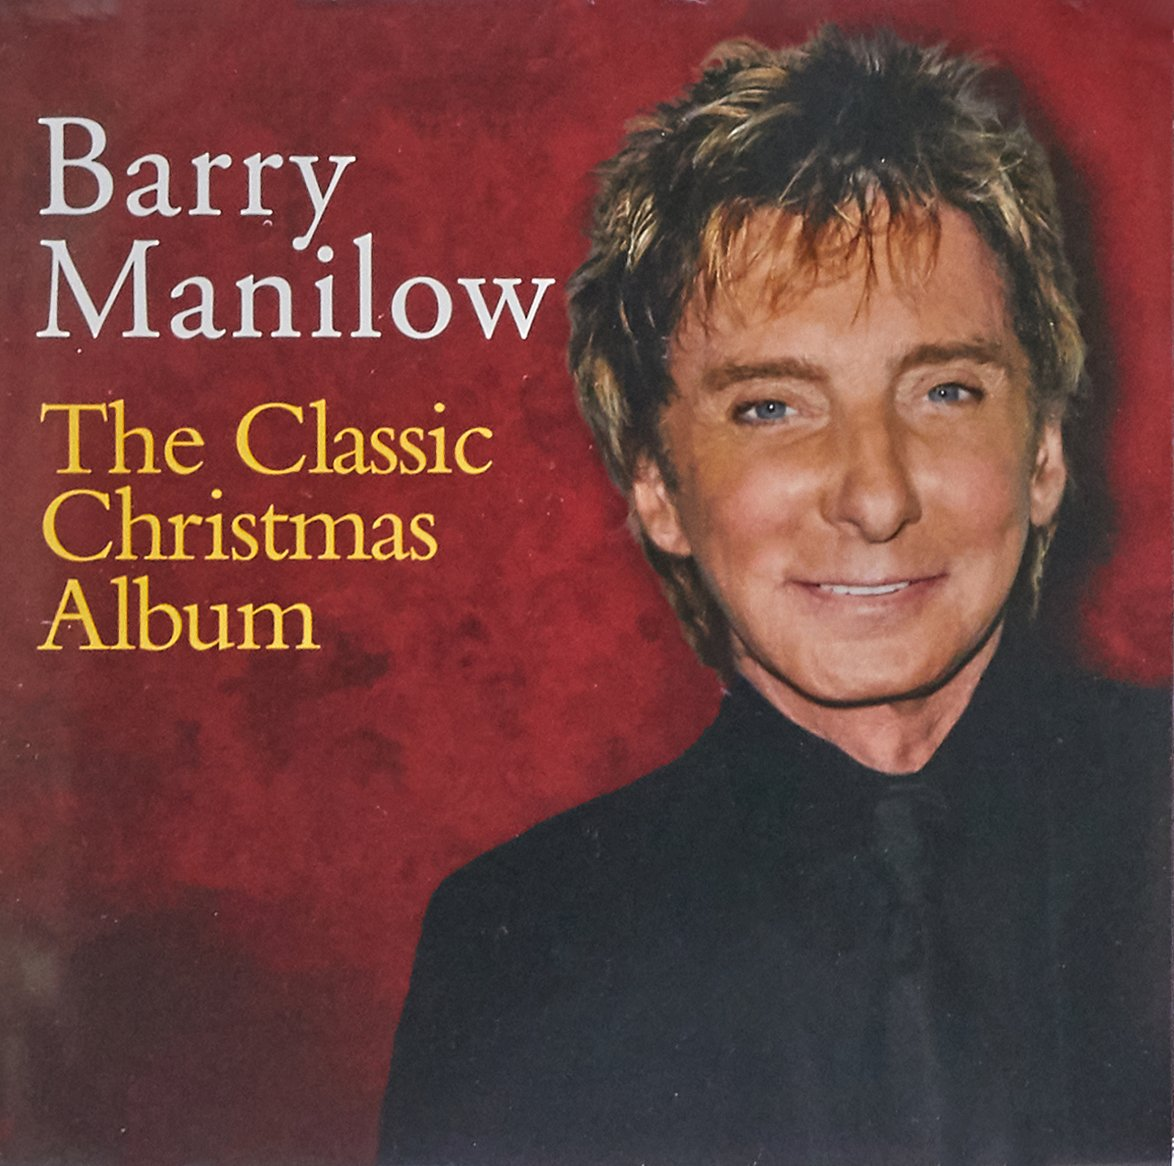 Barry Manilow - The Classic Christmas Album - Amazon.com Music